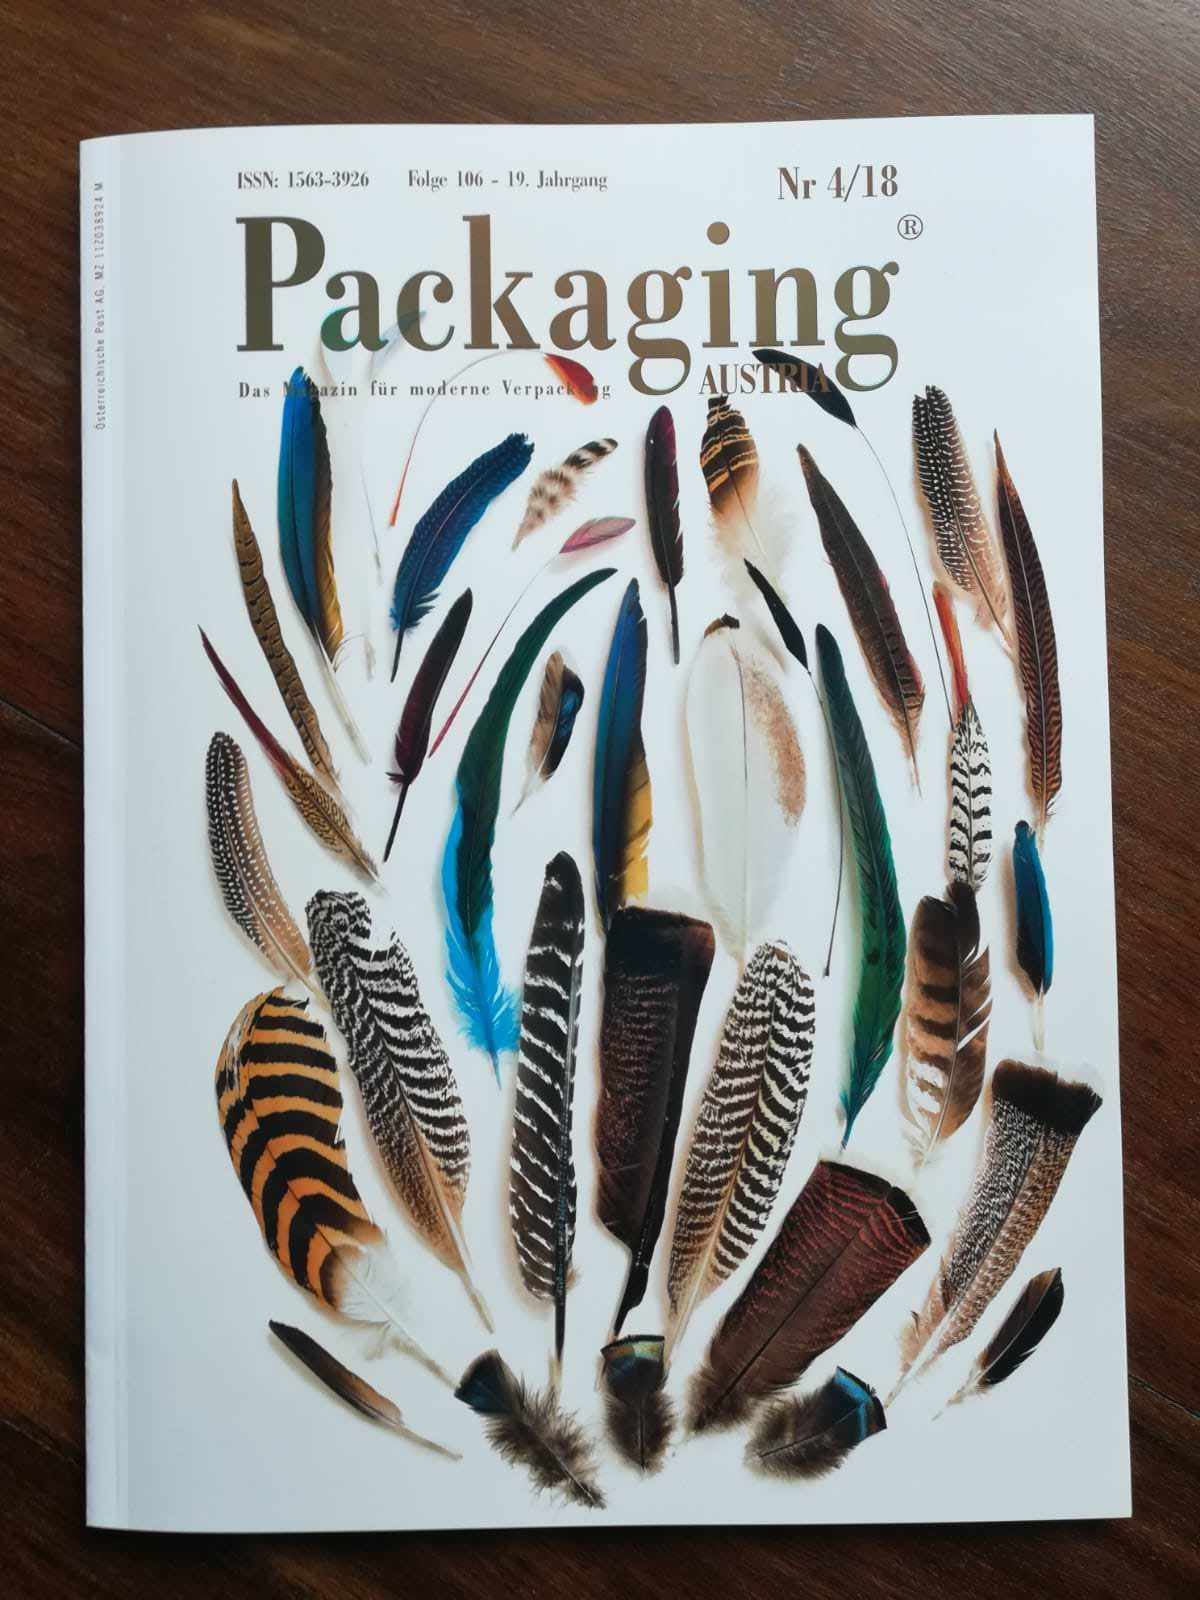 Packaging Austria Cover